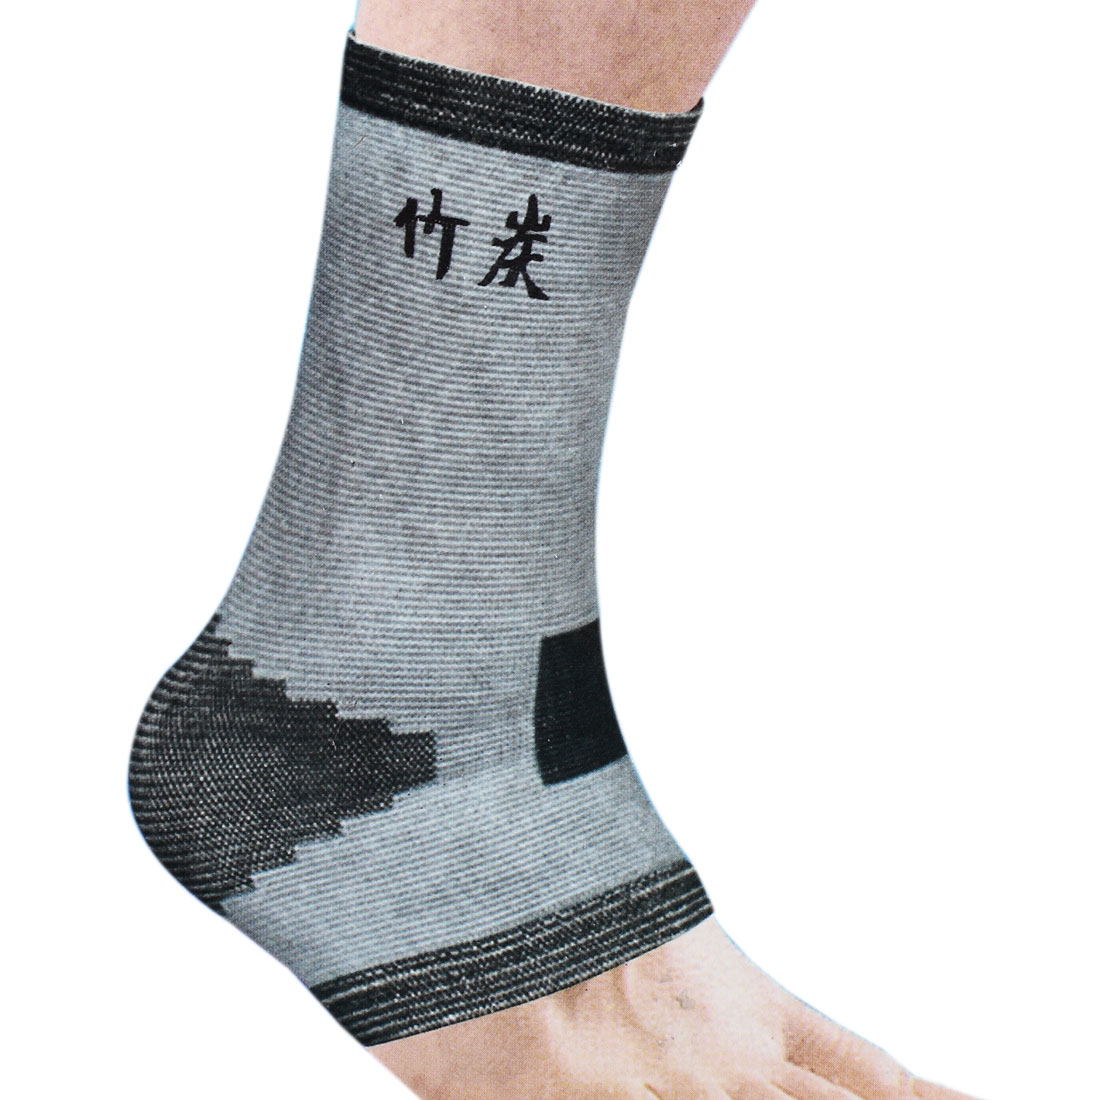 Gray Black Pinstripe Print Ankle Elastic Support Brace Protector